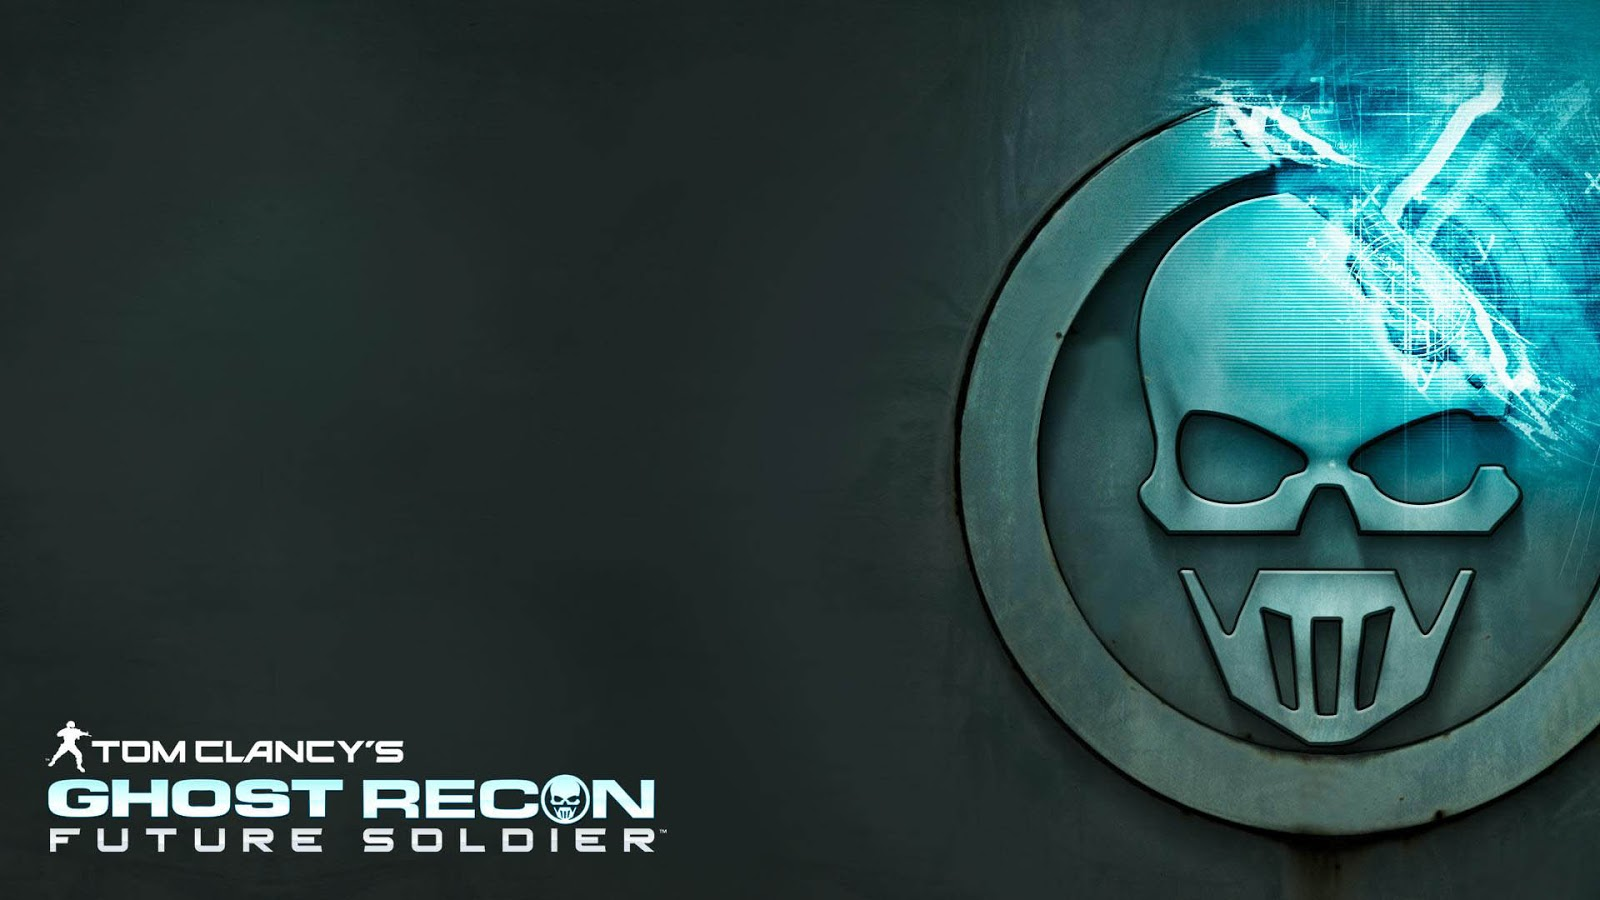 Ghost Recon Future Soldier HD & Widescreen Wallpaper 0.0837537960635819